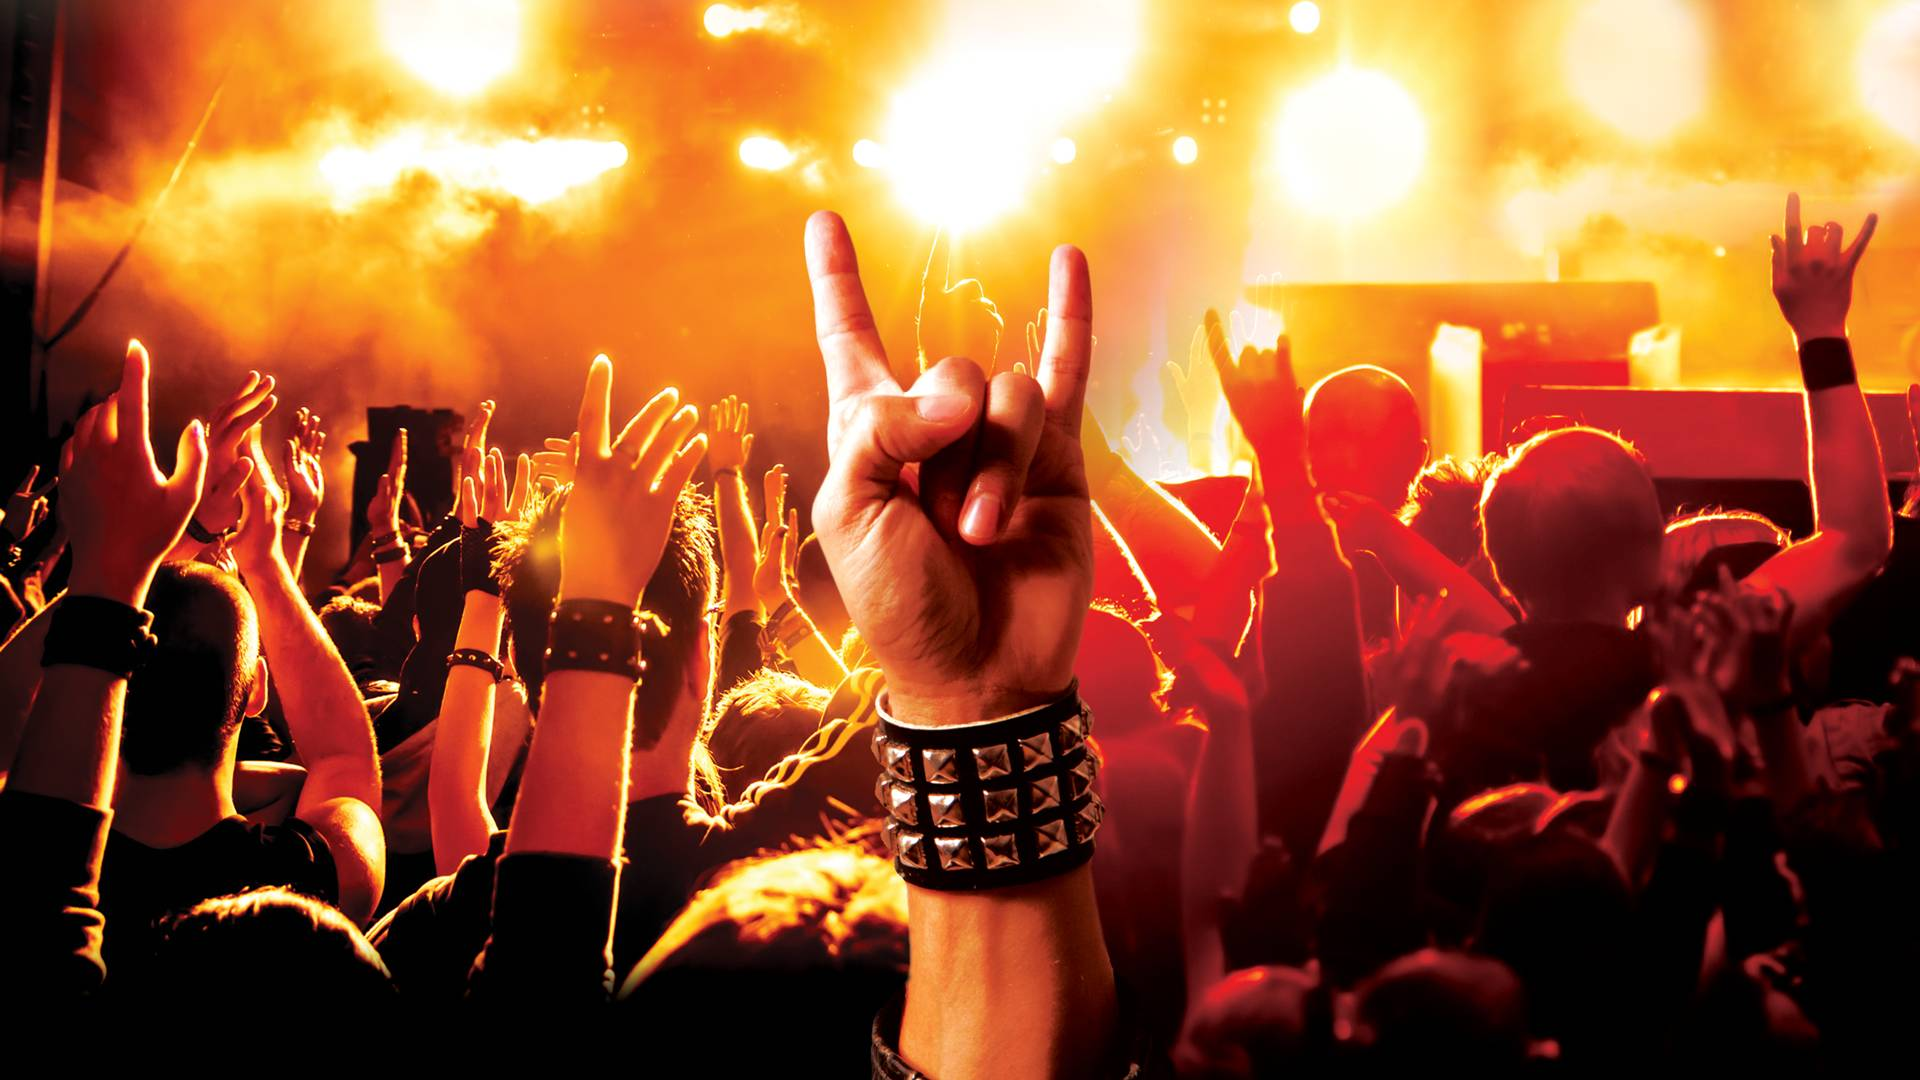 Rock and metal in 2018, Gerswin Reynolds, The State of Rock and Metal in 2018, sickandsound, alternative metal, hard rock, heavy metal, nu metal, rock, metal, songs selection, artists, Five Finger Death Punch, FFDP, A Perfect Circle, Tool, Deftones, Opeth, Nine Inch Nails, Marilyn Manson, Myrkur, rock and metal forecast, rock and metal comparison, rock and metal analysis